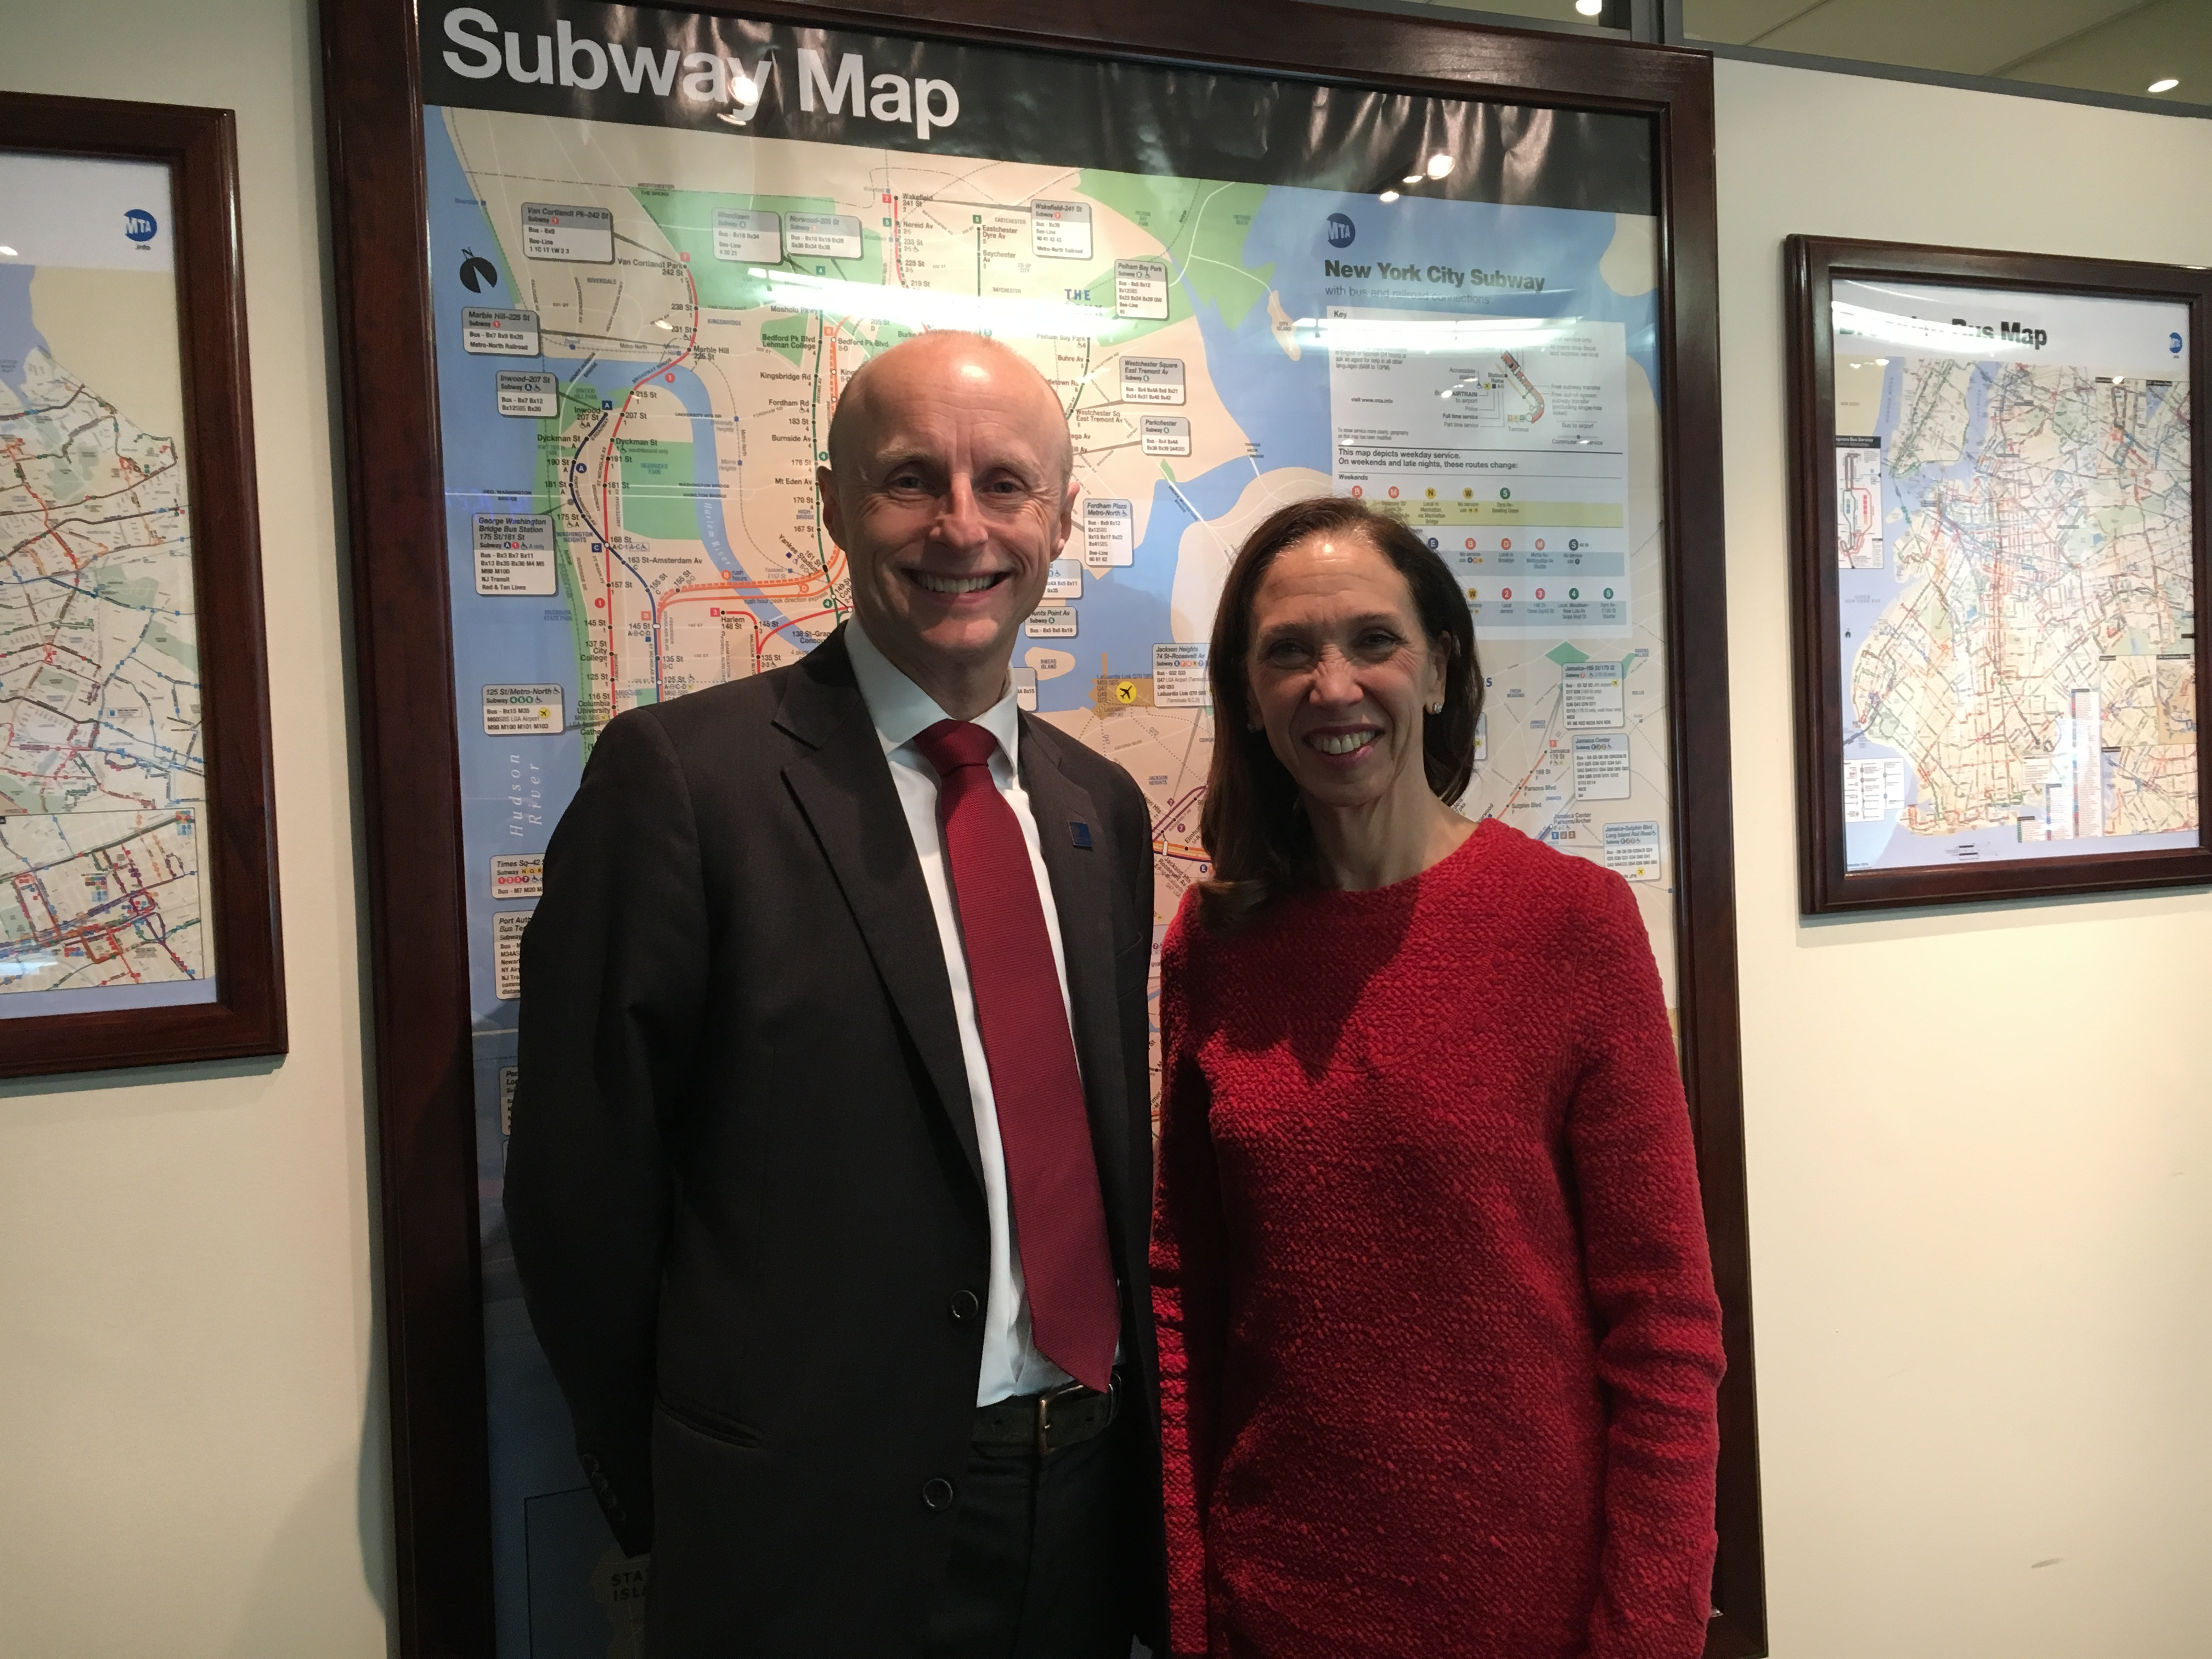 As Chair of the Committee on Corporations, Authorities, and Commissions, Assemblymember Amy Paulin met with NYC Transit Authority President Andy Byford to discuss the Subway's infrastructure and